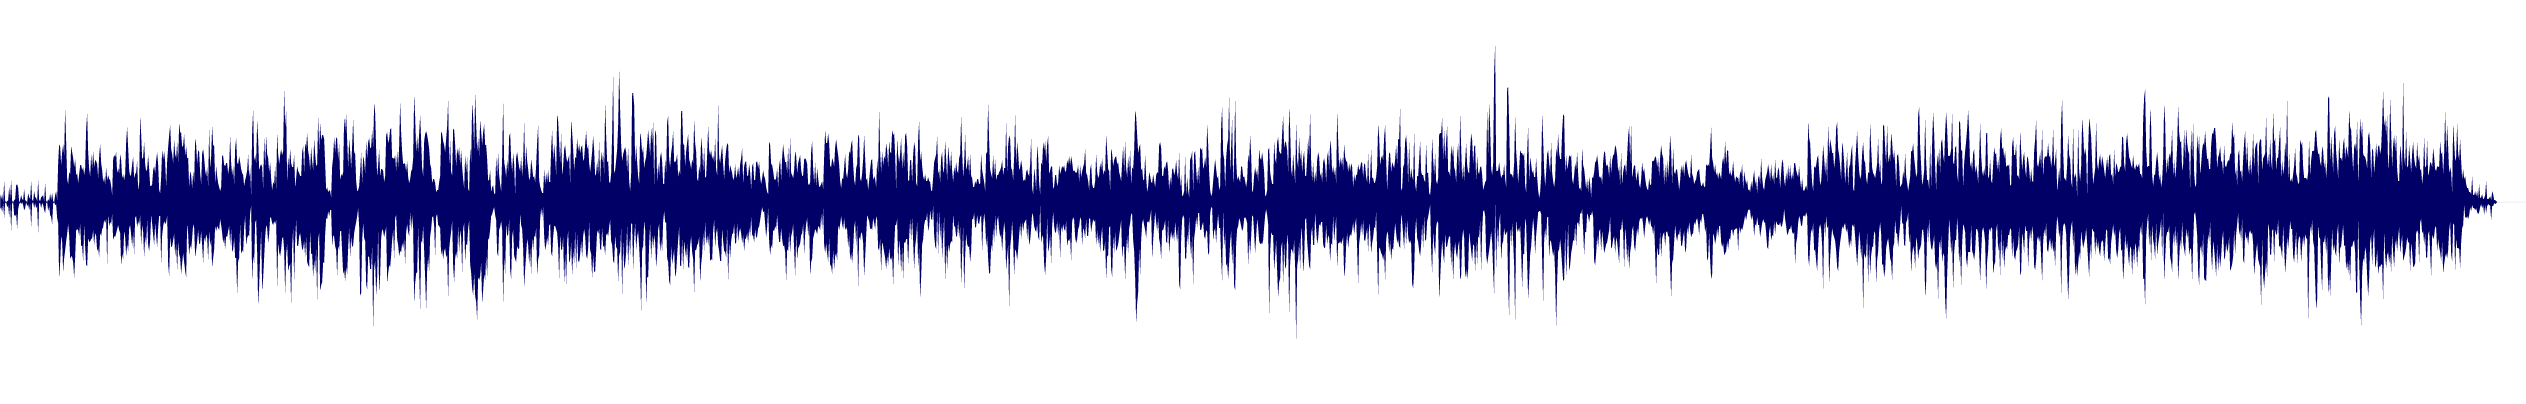 waveform of track #95288